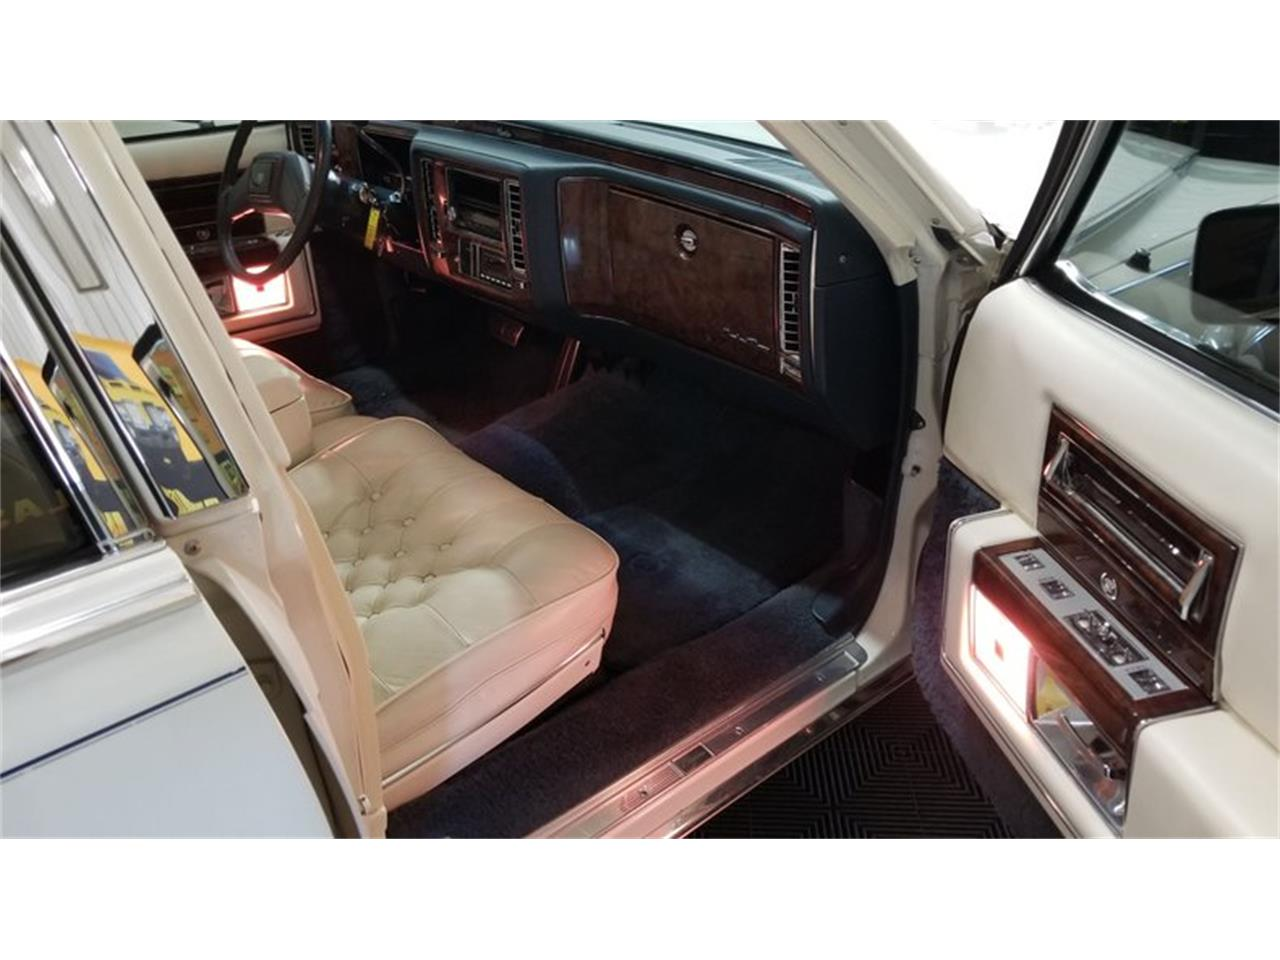 1991 Cadillac Brougham for sale in Mankato, MN – photo 35